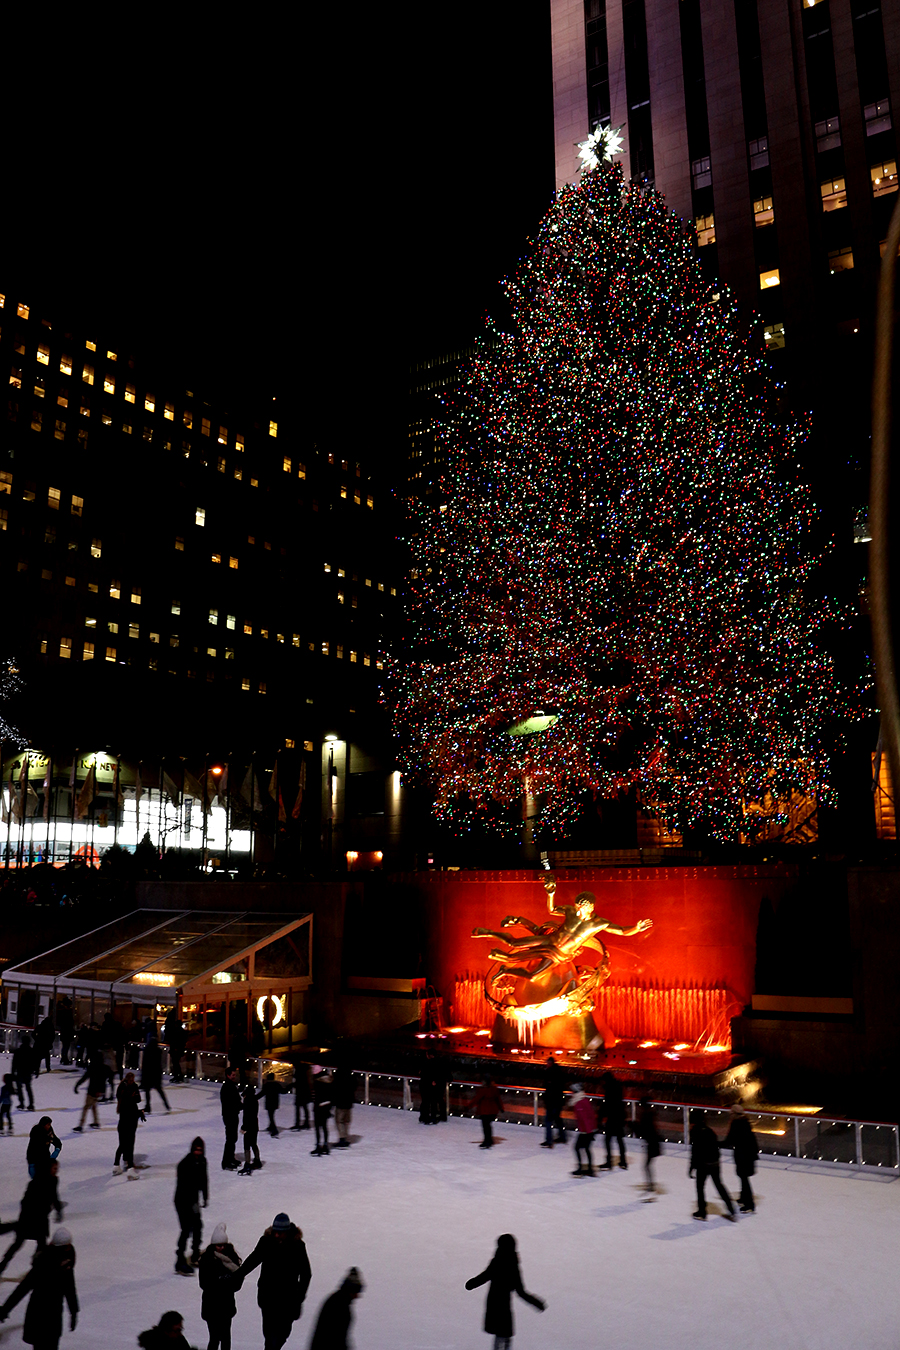 kerstbomen spotten in New York